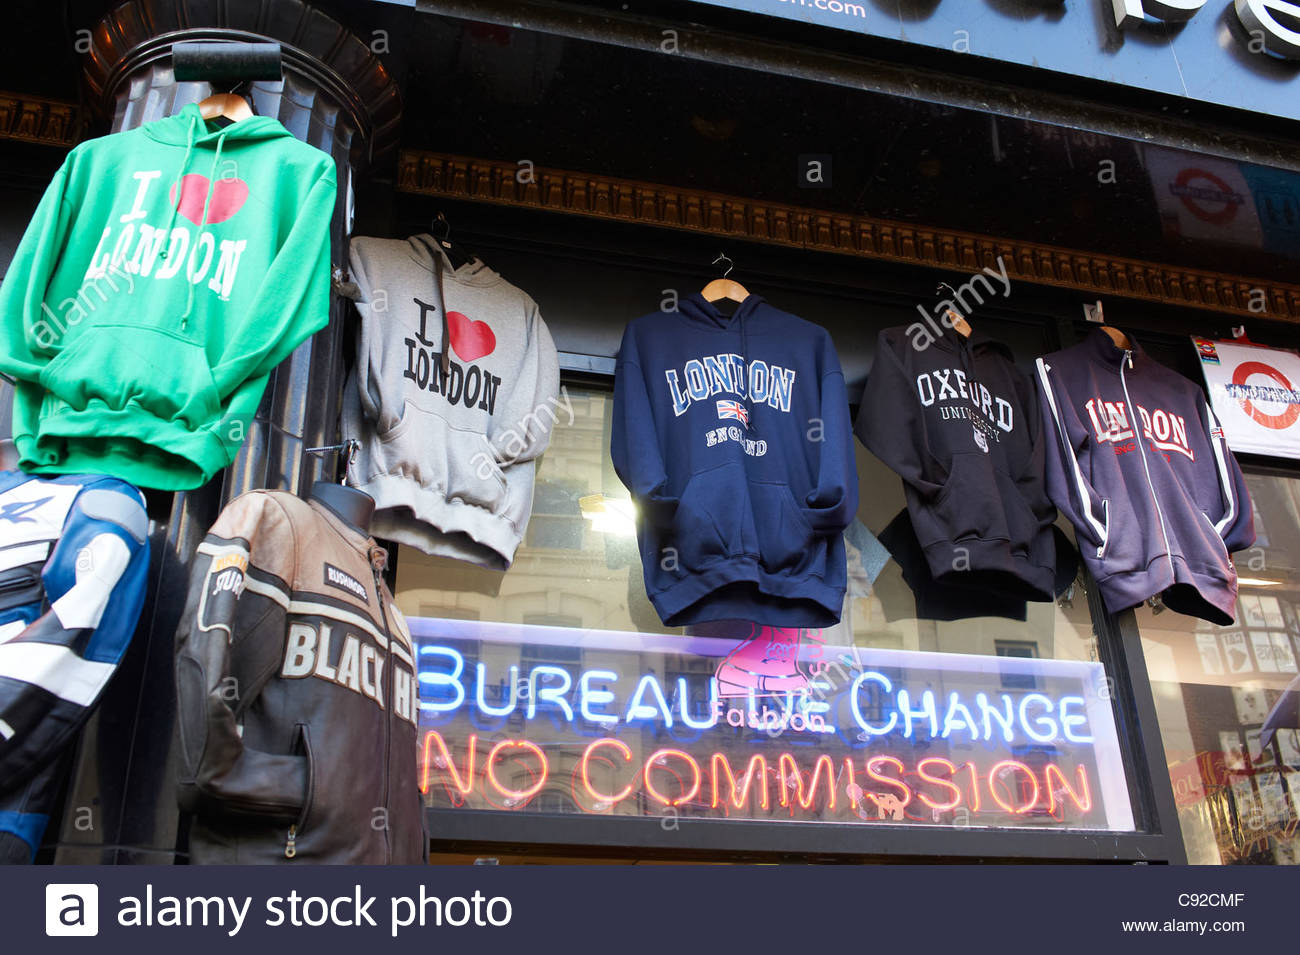 Sweat shirts outside a Shop on Oxford Street   London - Stock Image